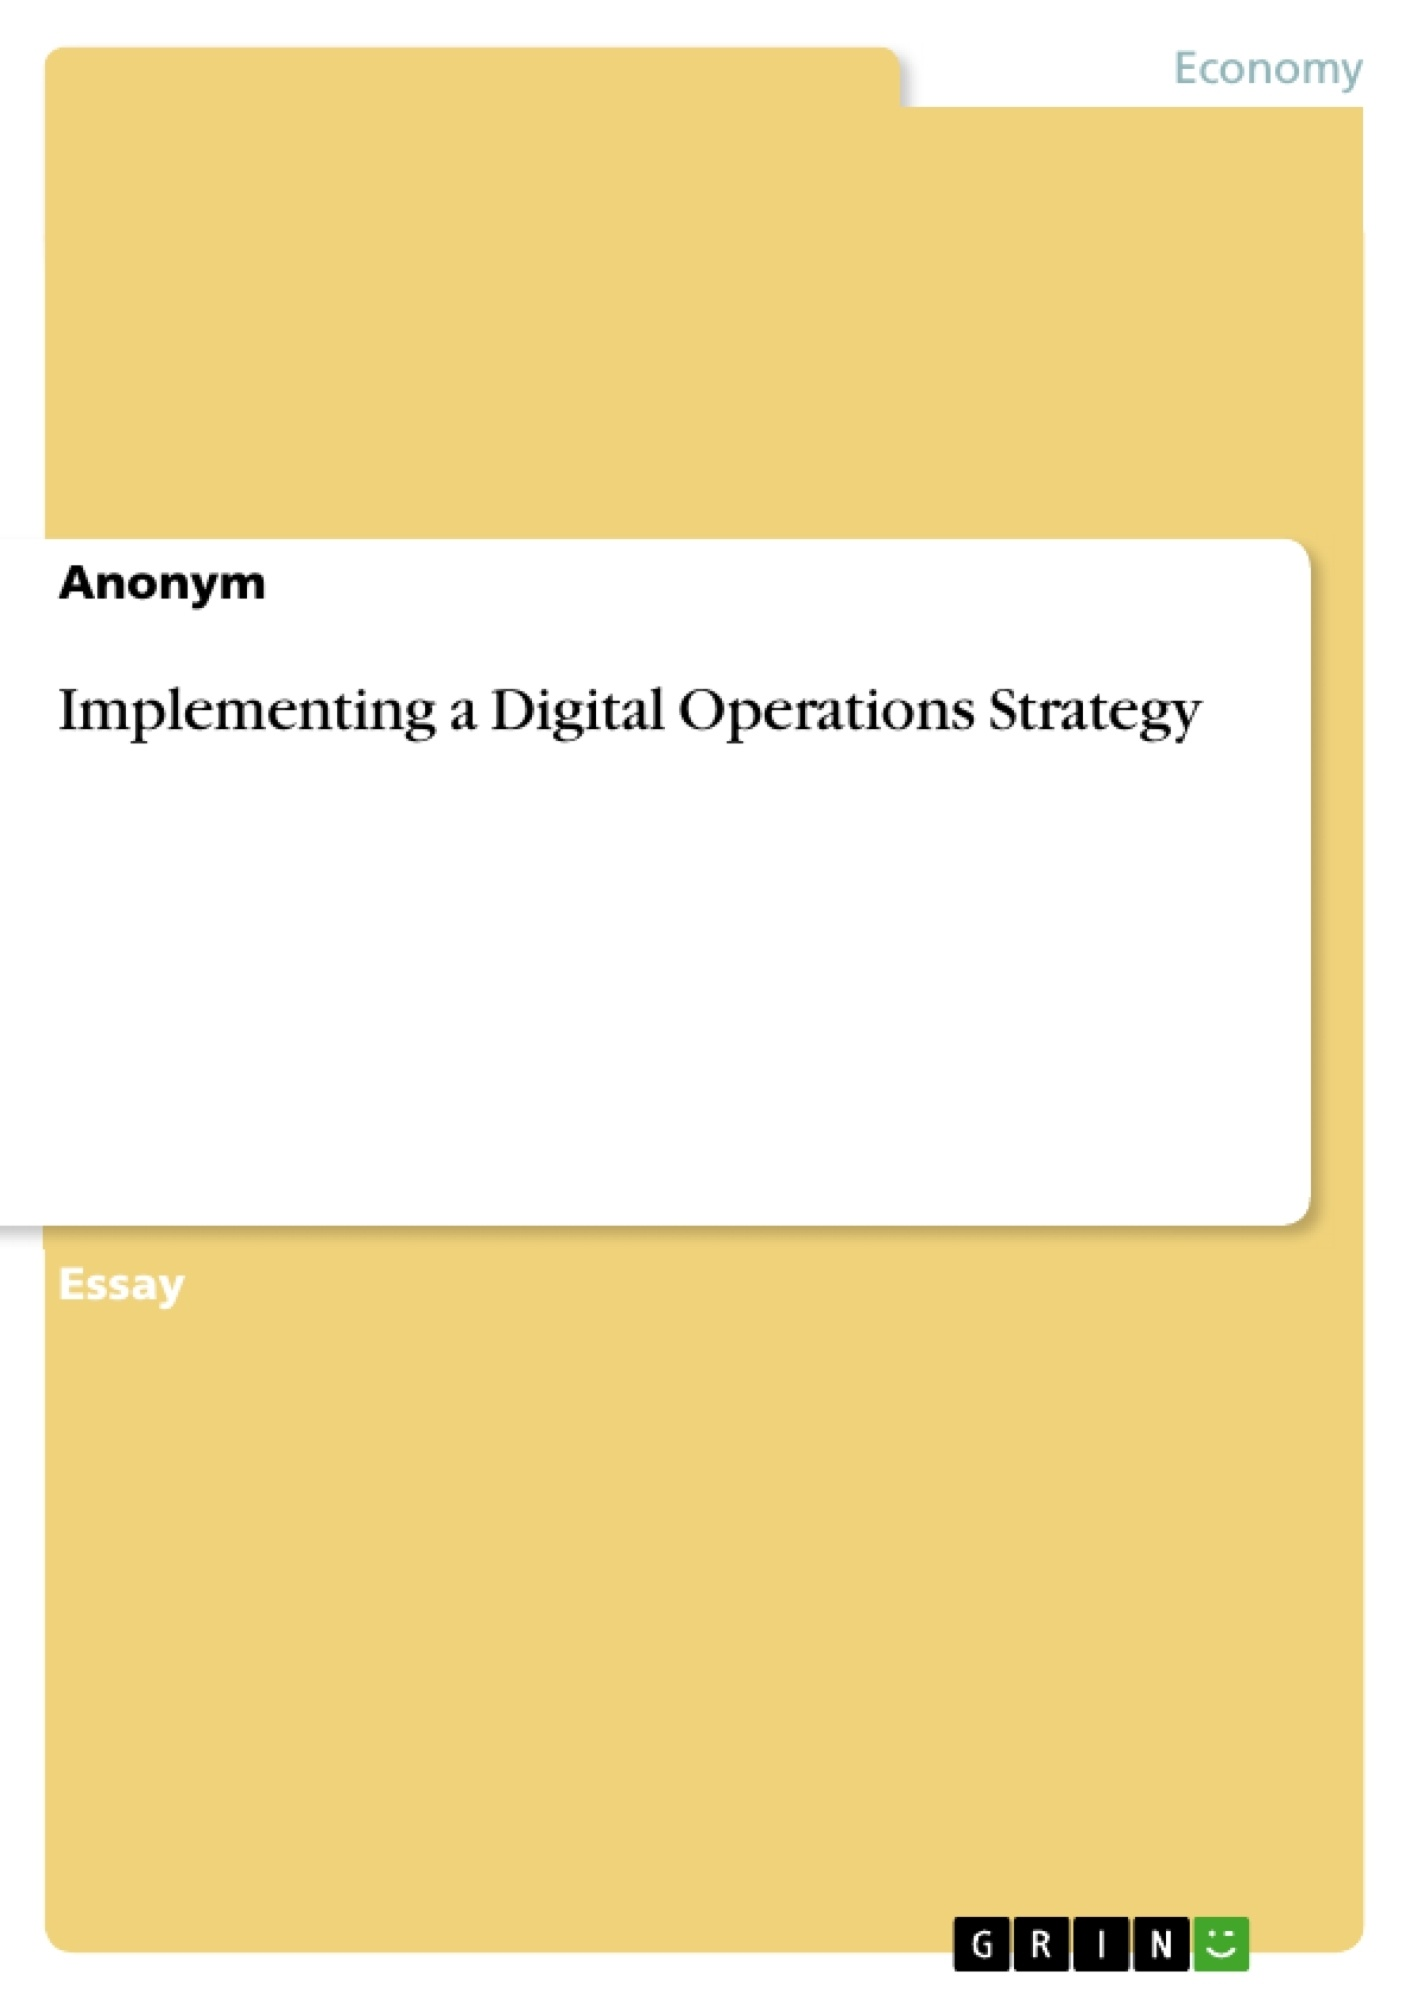 Title: Implementing a Digital Operations Strategy